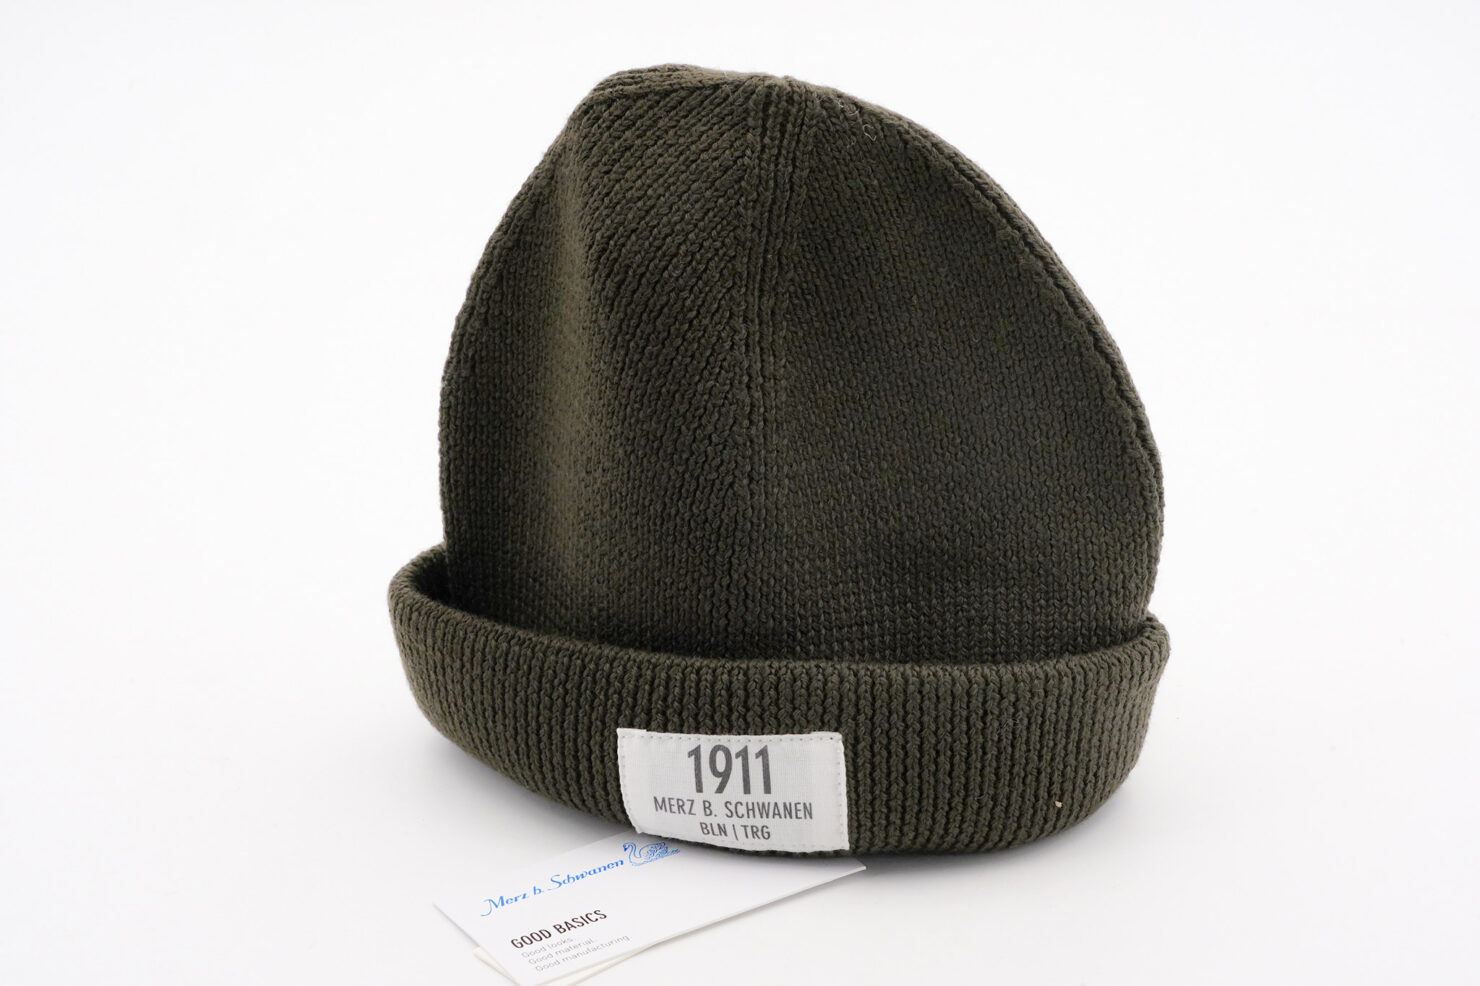 GOOD TRAINIG BEANIE WITH PATCH - MERZ B. SCHWANEN